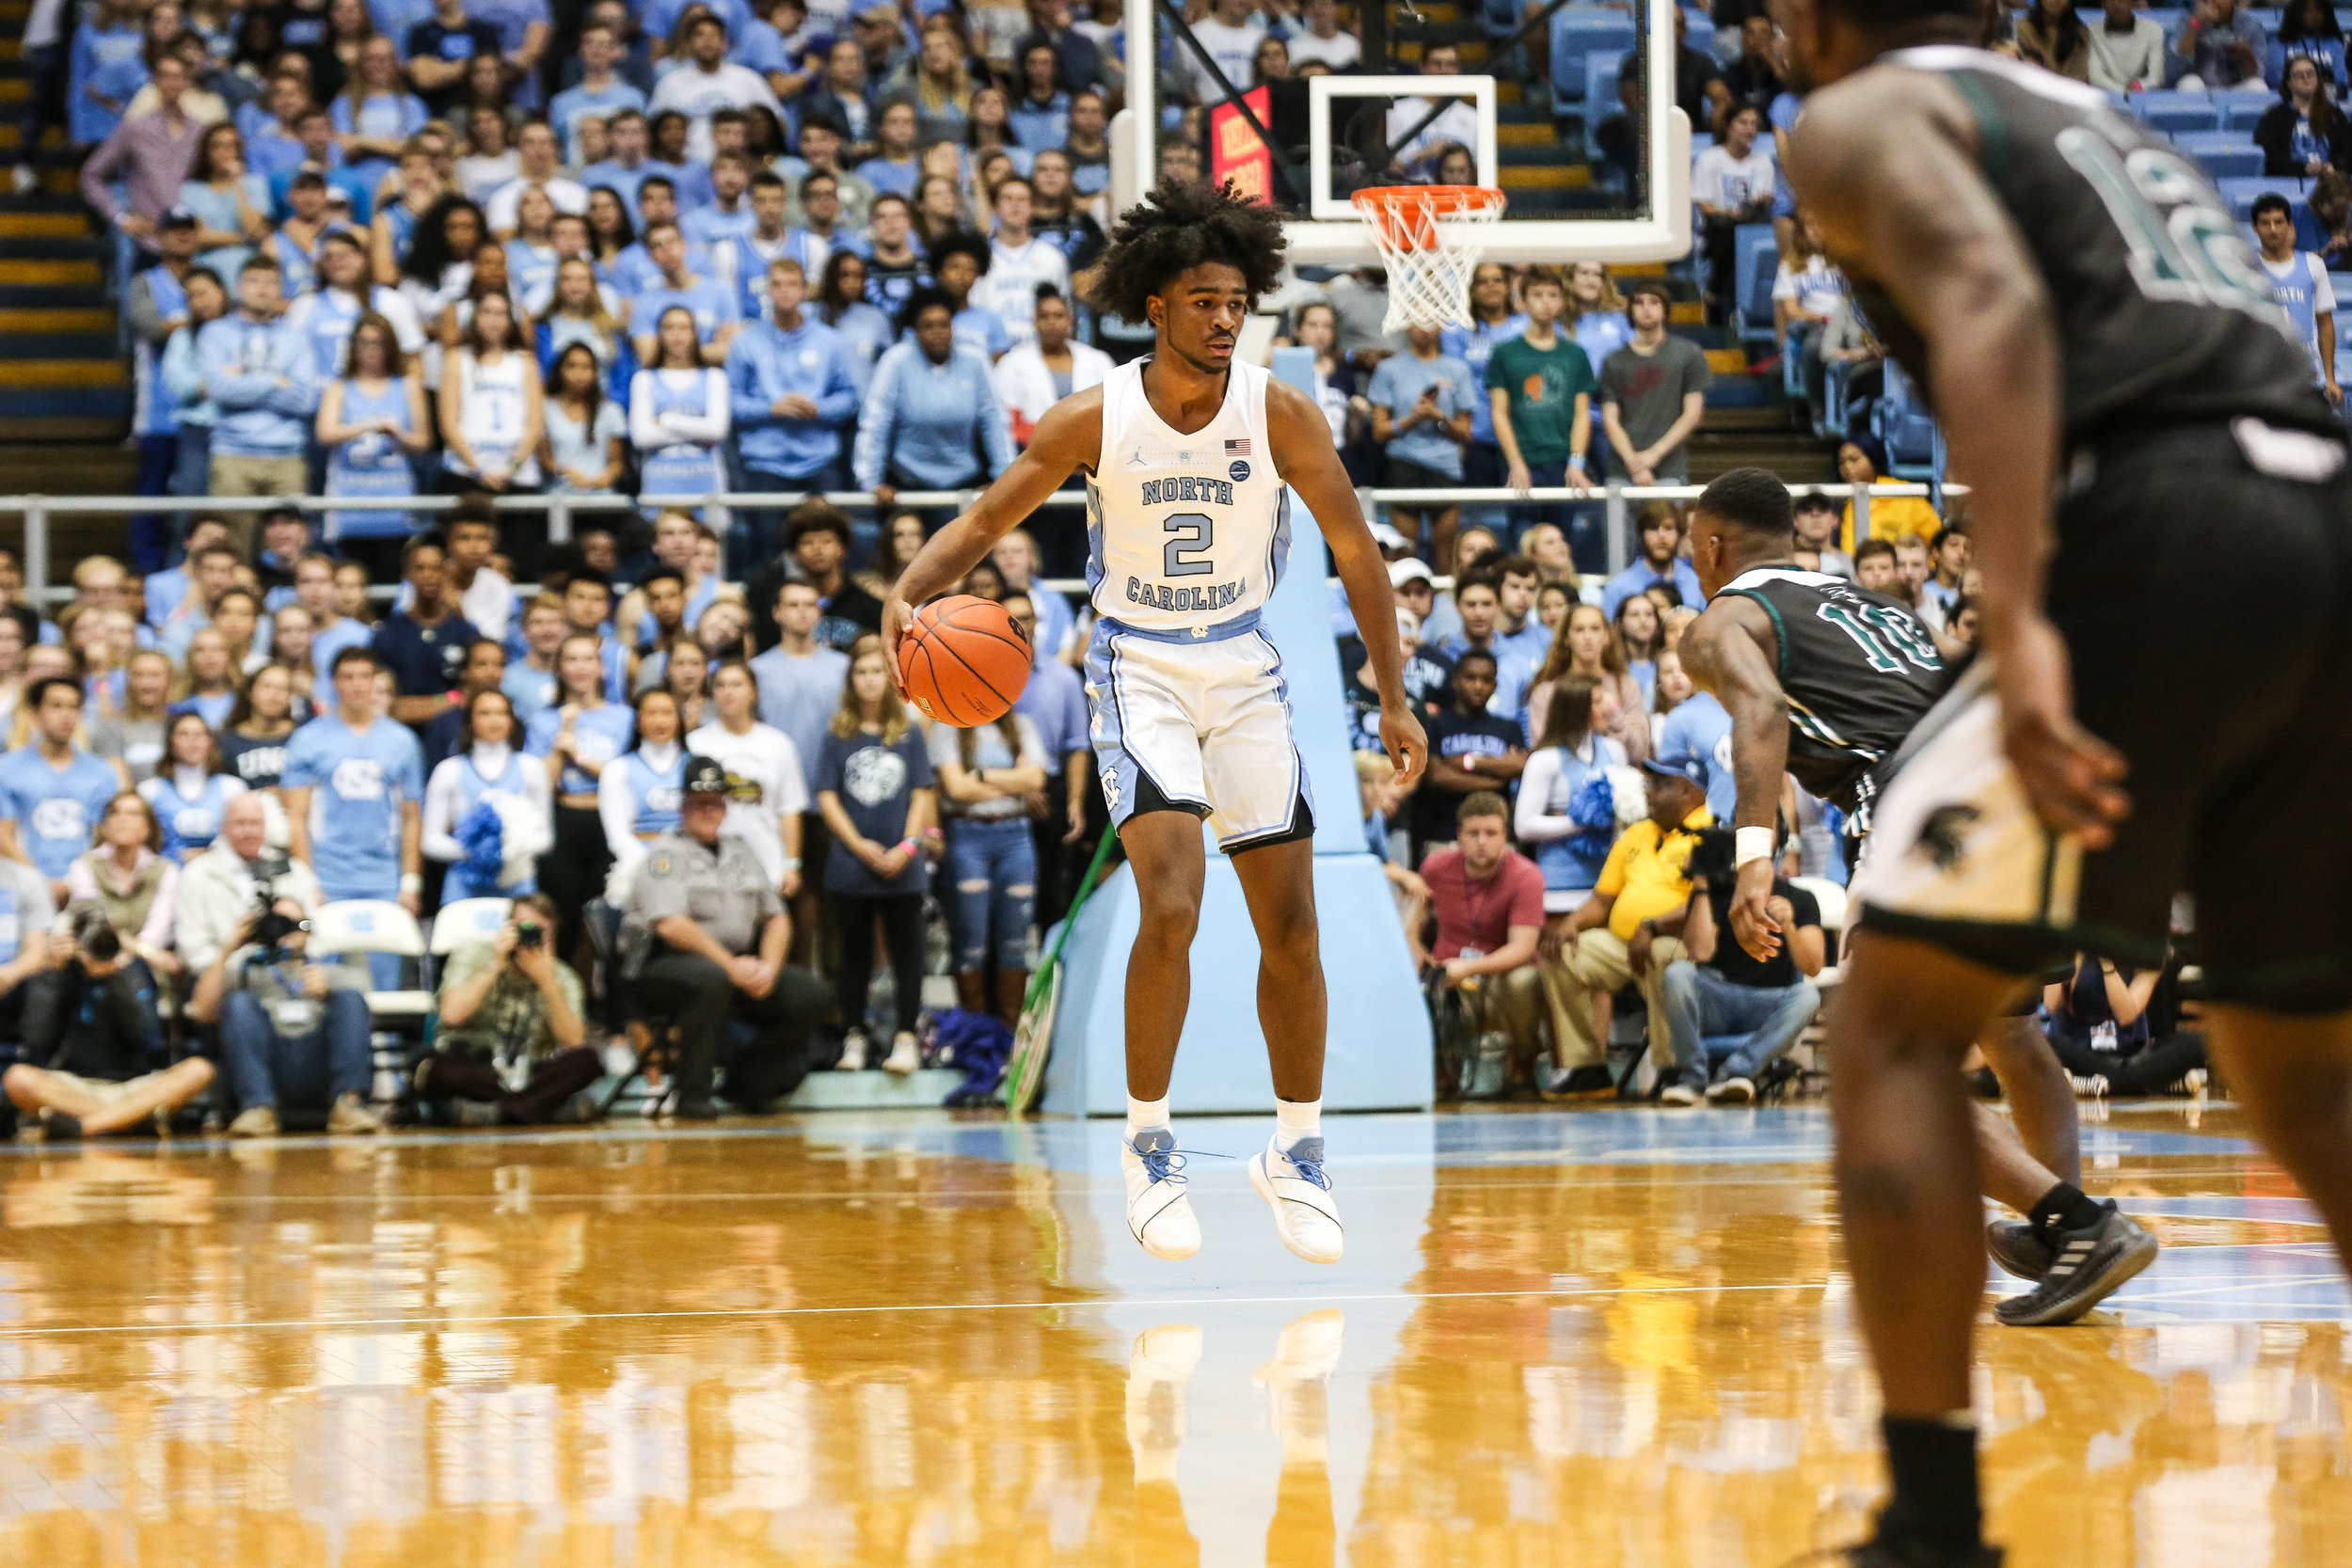 Coby+White+__+UNC+Men's+Basketball+__+Photo+by+Keenan+Hairston.jpg